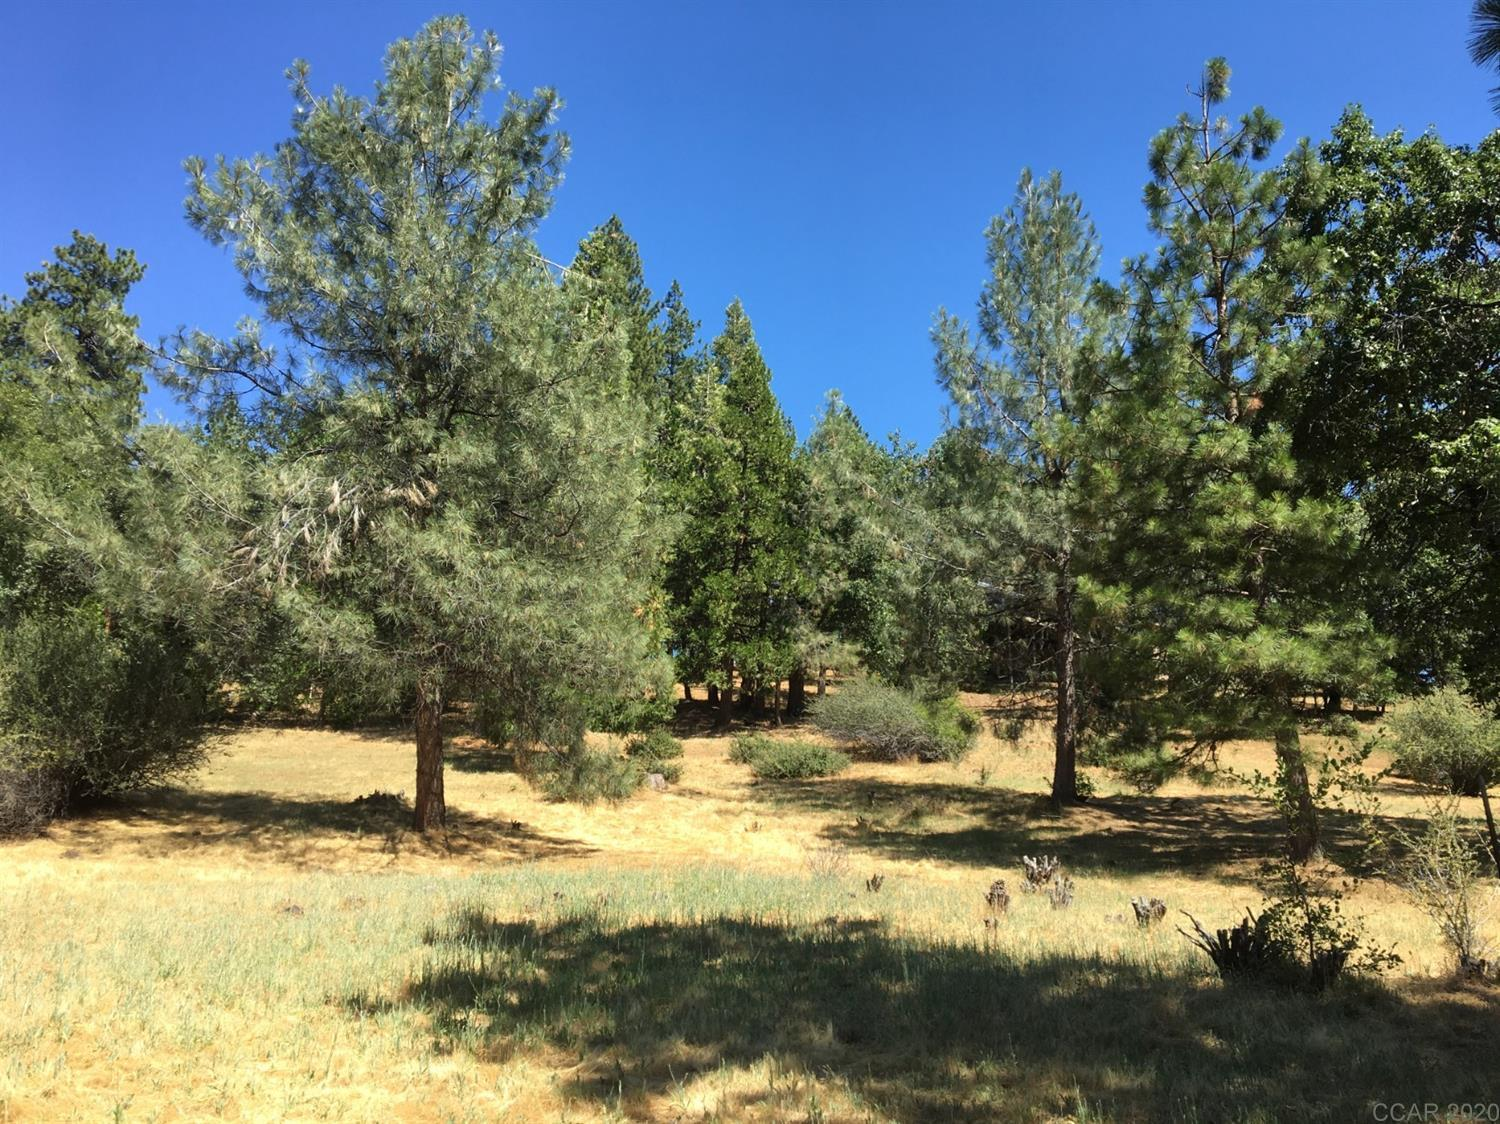 Water & Sewer included in price ($22,242 value)! This lot is located on a quiet street in the gated community of Forest Meadows. It's a great location to build your mountain dream home. Easy access to Hwy 4 and just minutes from downtown Murphys, wineries and golf (or a short drive to lakes & skiing). Amenities include: security gate/patrols, underground utilities, common area maintenance, snowplowing of main roads, clubhouse, 2 pools & parks, tennis/pickle-ball/boccee courts, playgrounds, dog park, walking/hiking trails...and so much more.